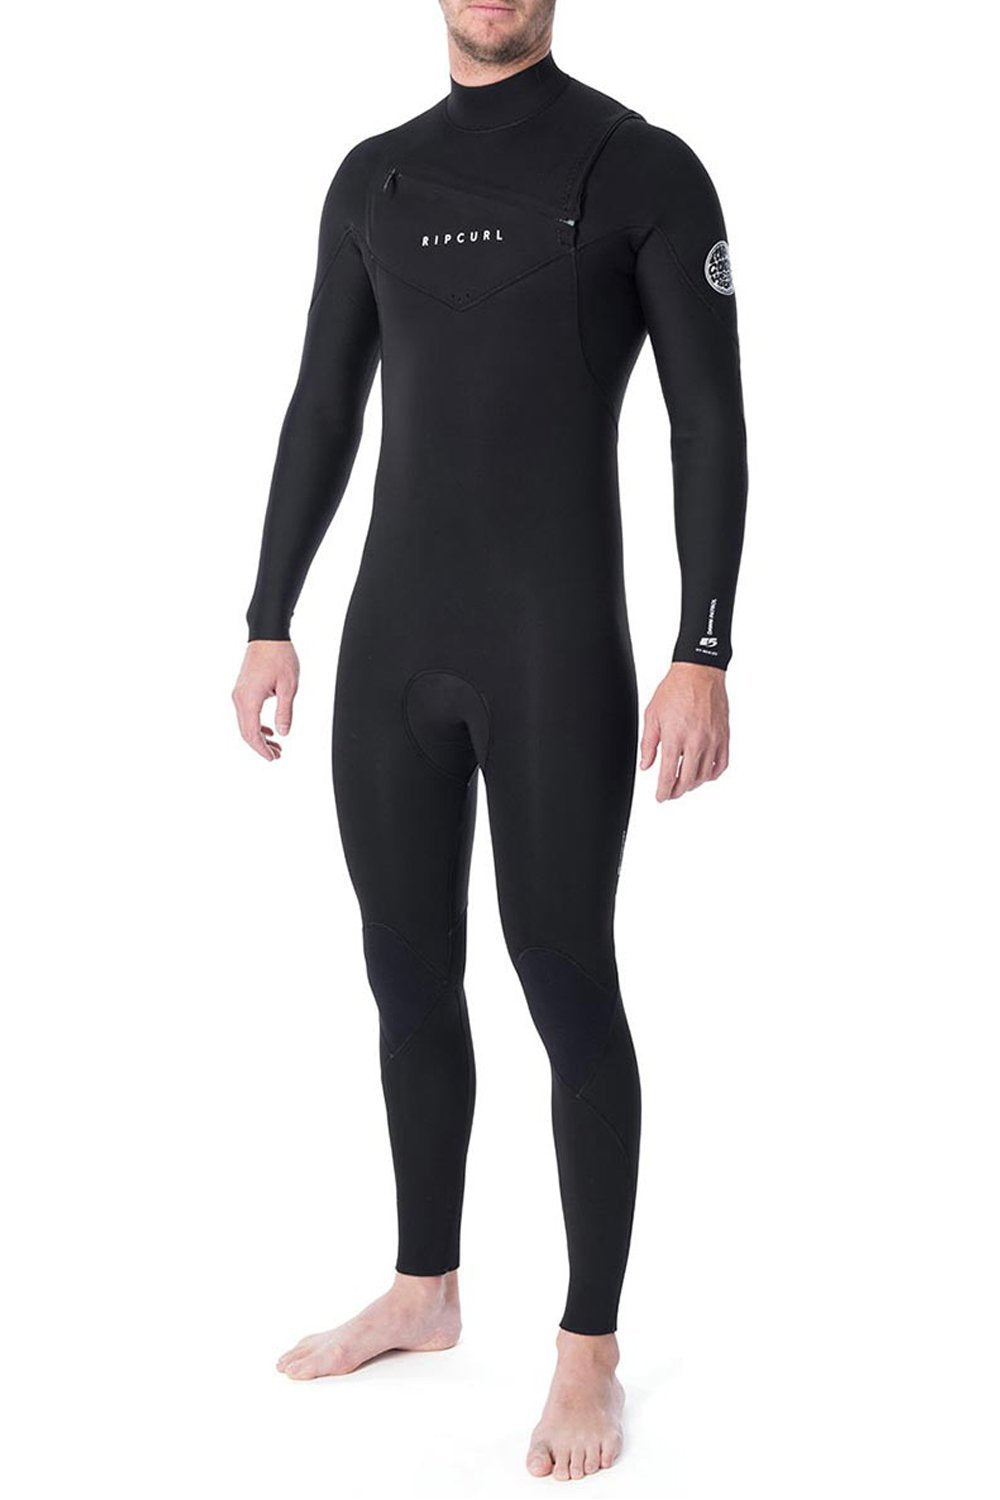 Dawn Patrol 3/2mm Chest Zip Wetsuit Steamer